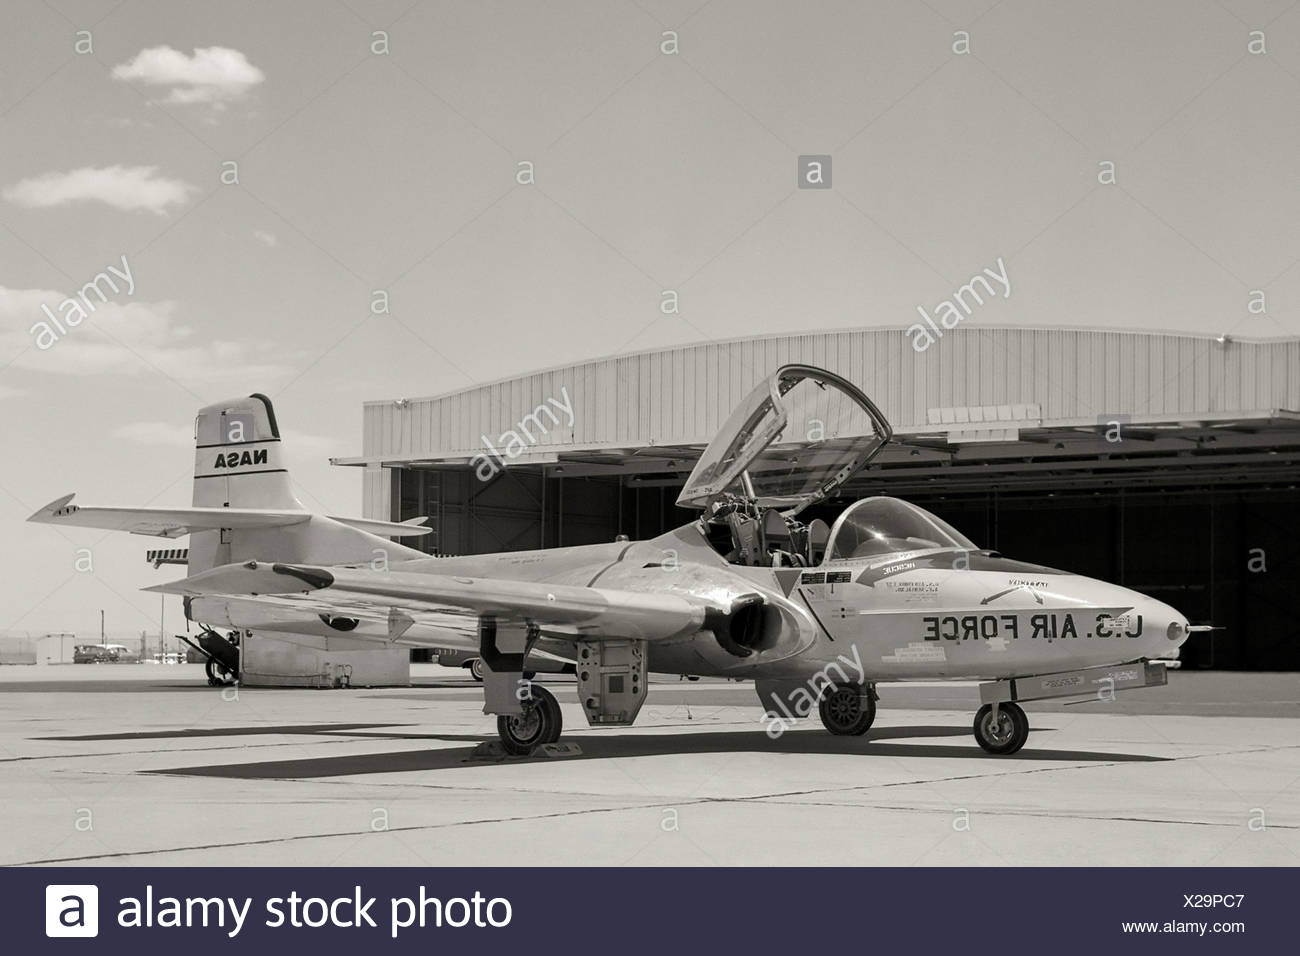 T-37 Training Jet - Stock Image